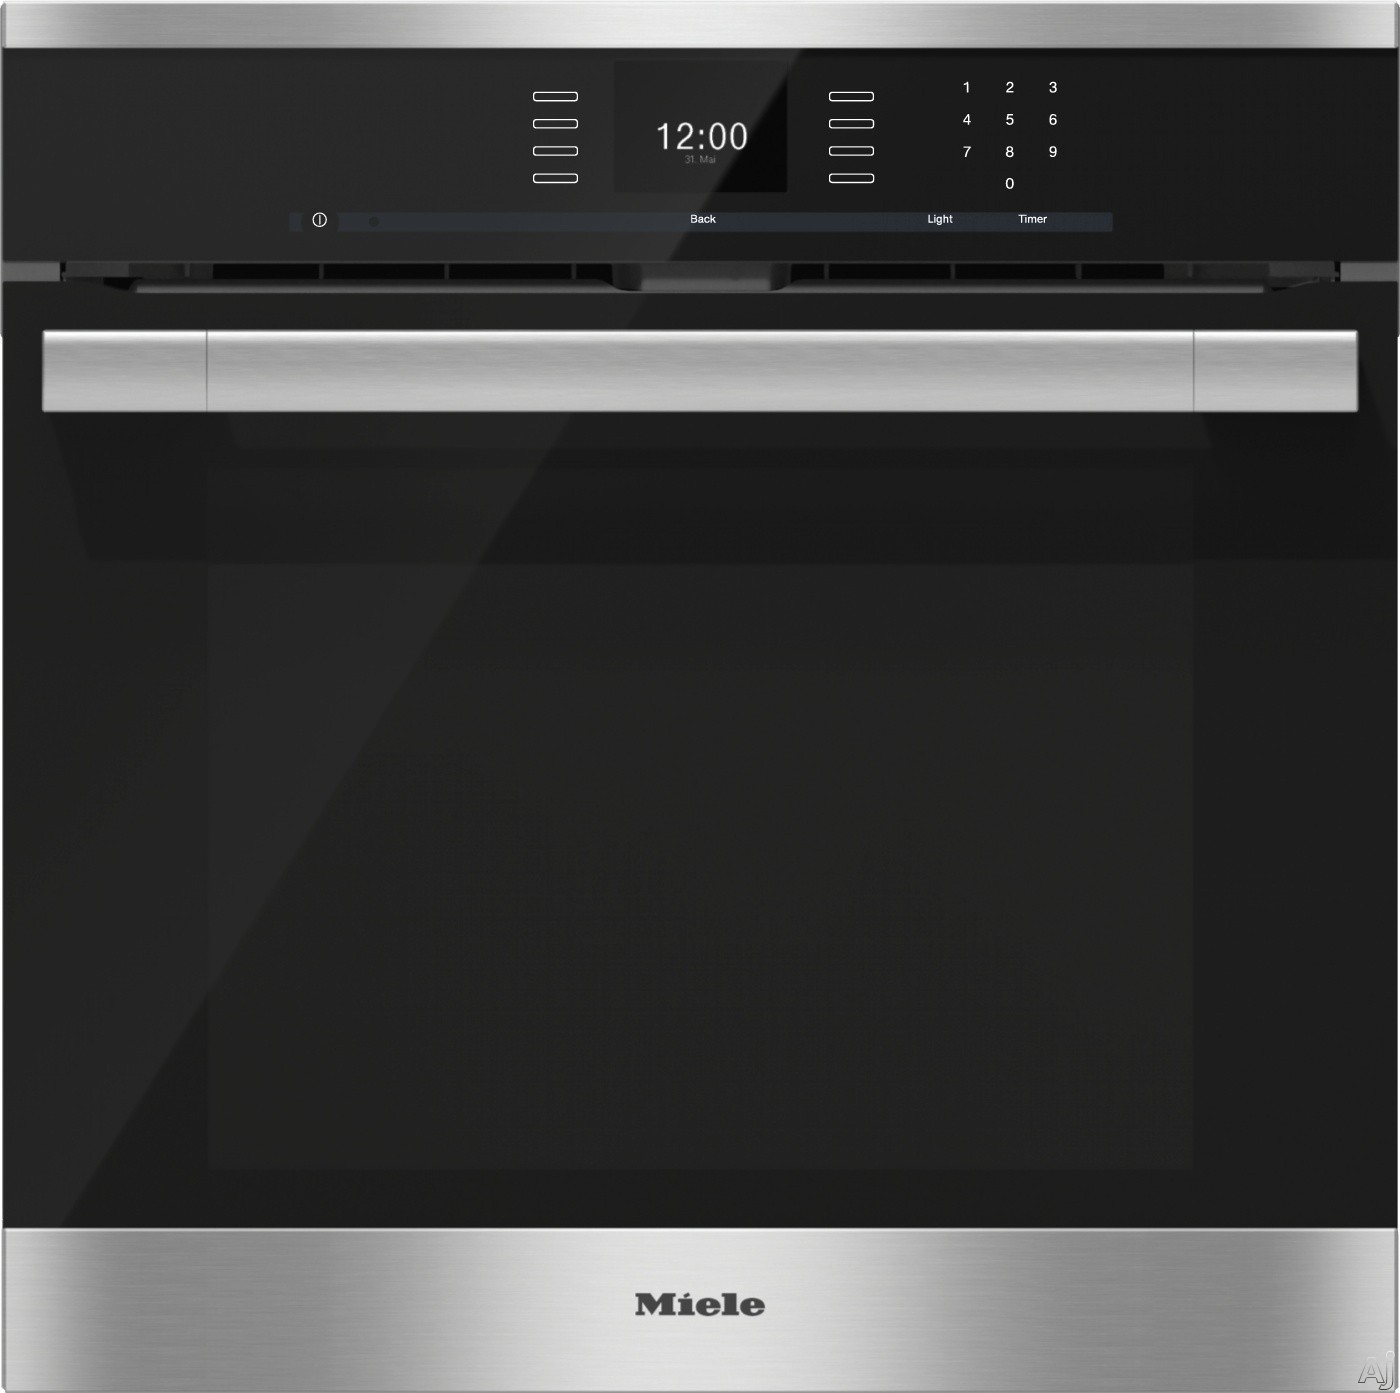 Miele ContourLine SensorTronic Series H6560BP 24 Inch Single Electric Wall Oven with Convection Cooking, SensorTronic Controls, MasterChef Programs, Rapid Preheat, Temperature Probe, PerfectClean Fini